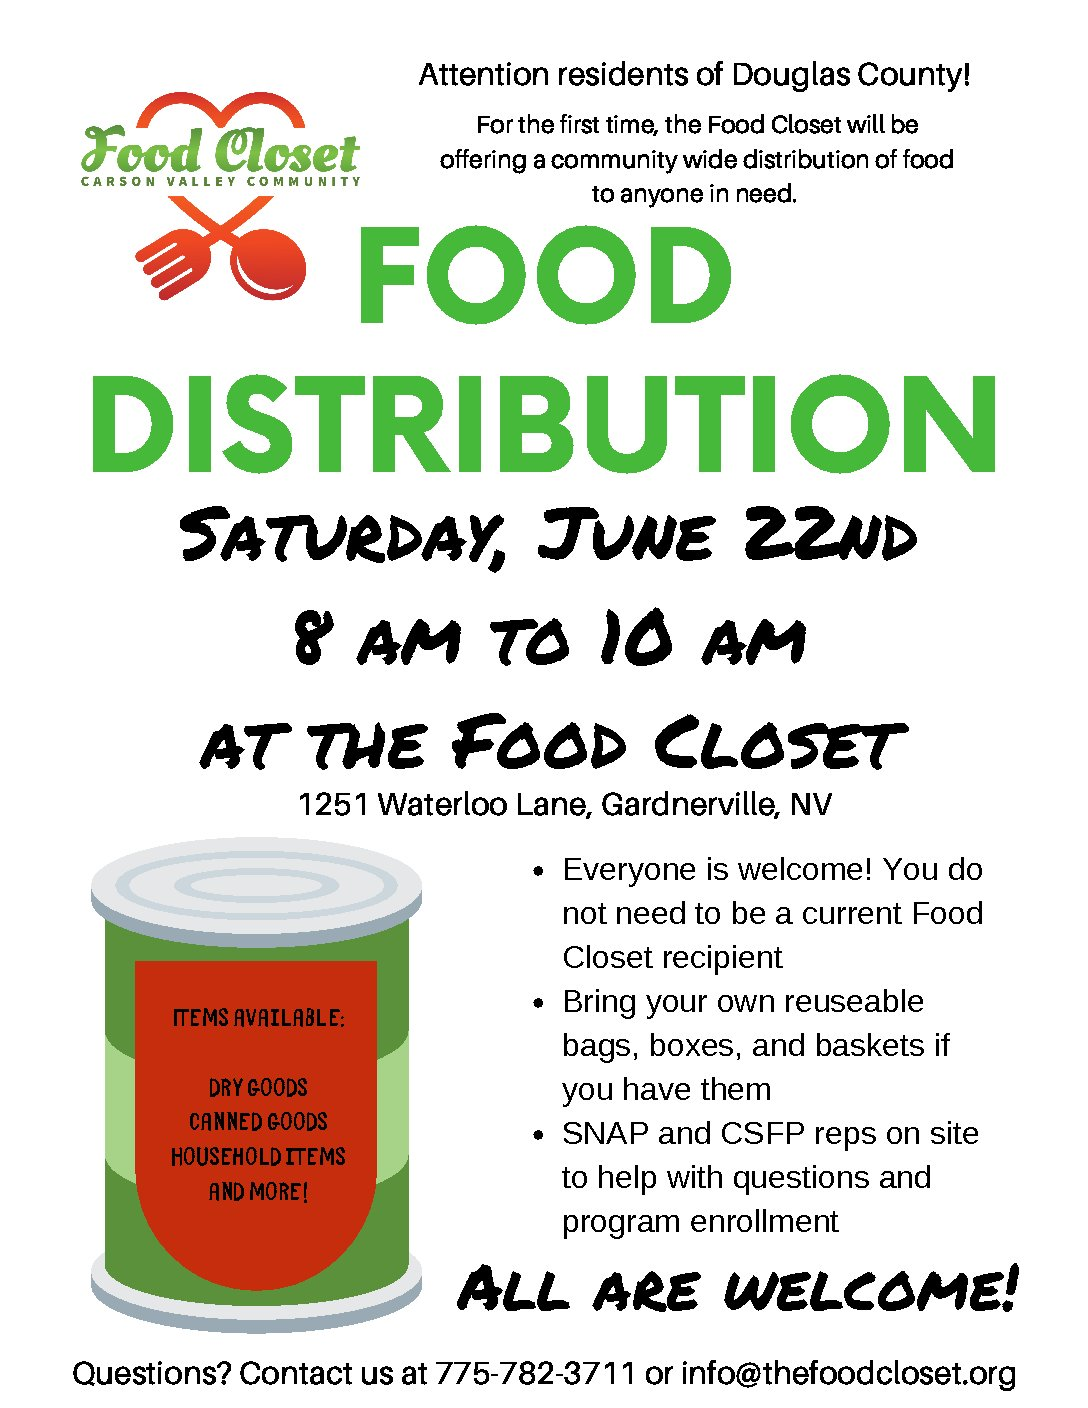 Carson Valley Community Food Closet: Food Distribution - Partnership